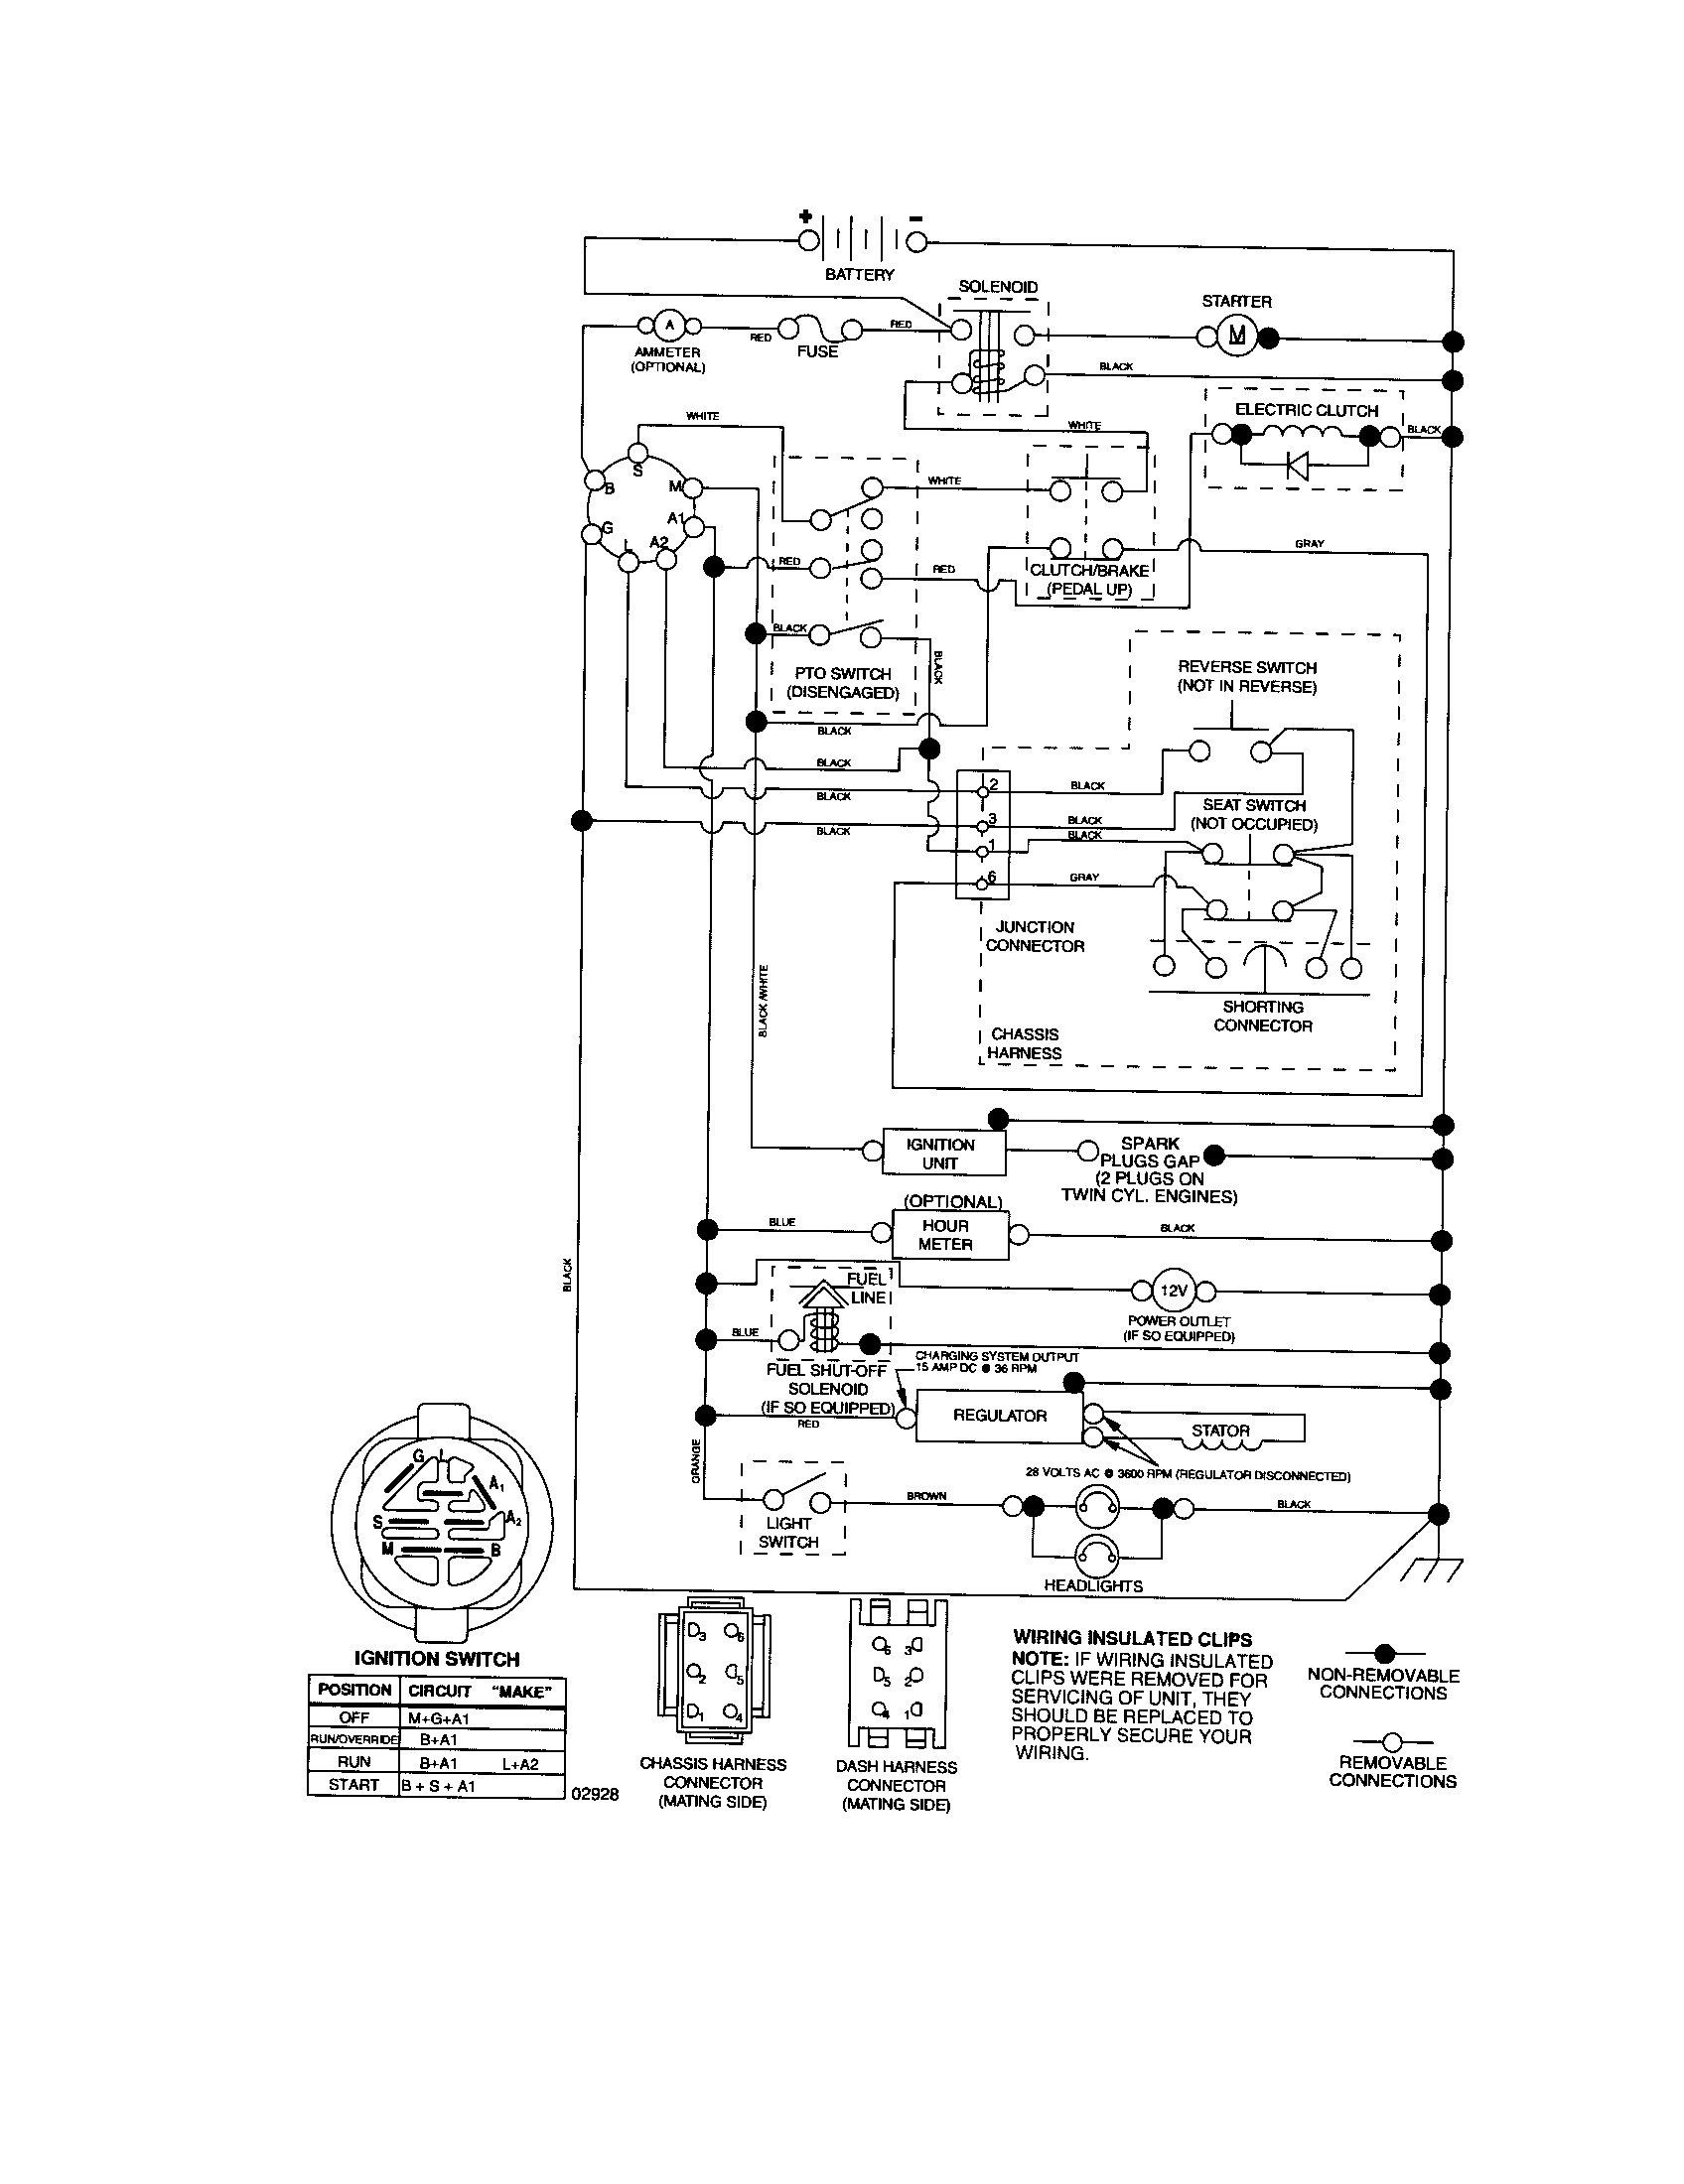 hight resolution of craftsman lawn tractor model 917276904 schematic diagram tractor old ford tractor clutch diagram printable wiring diagram schematic